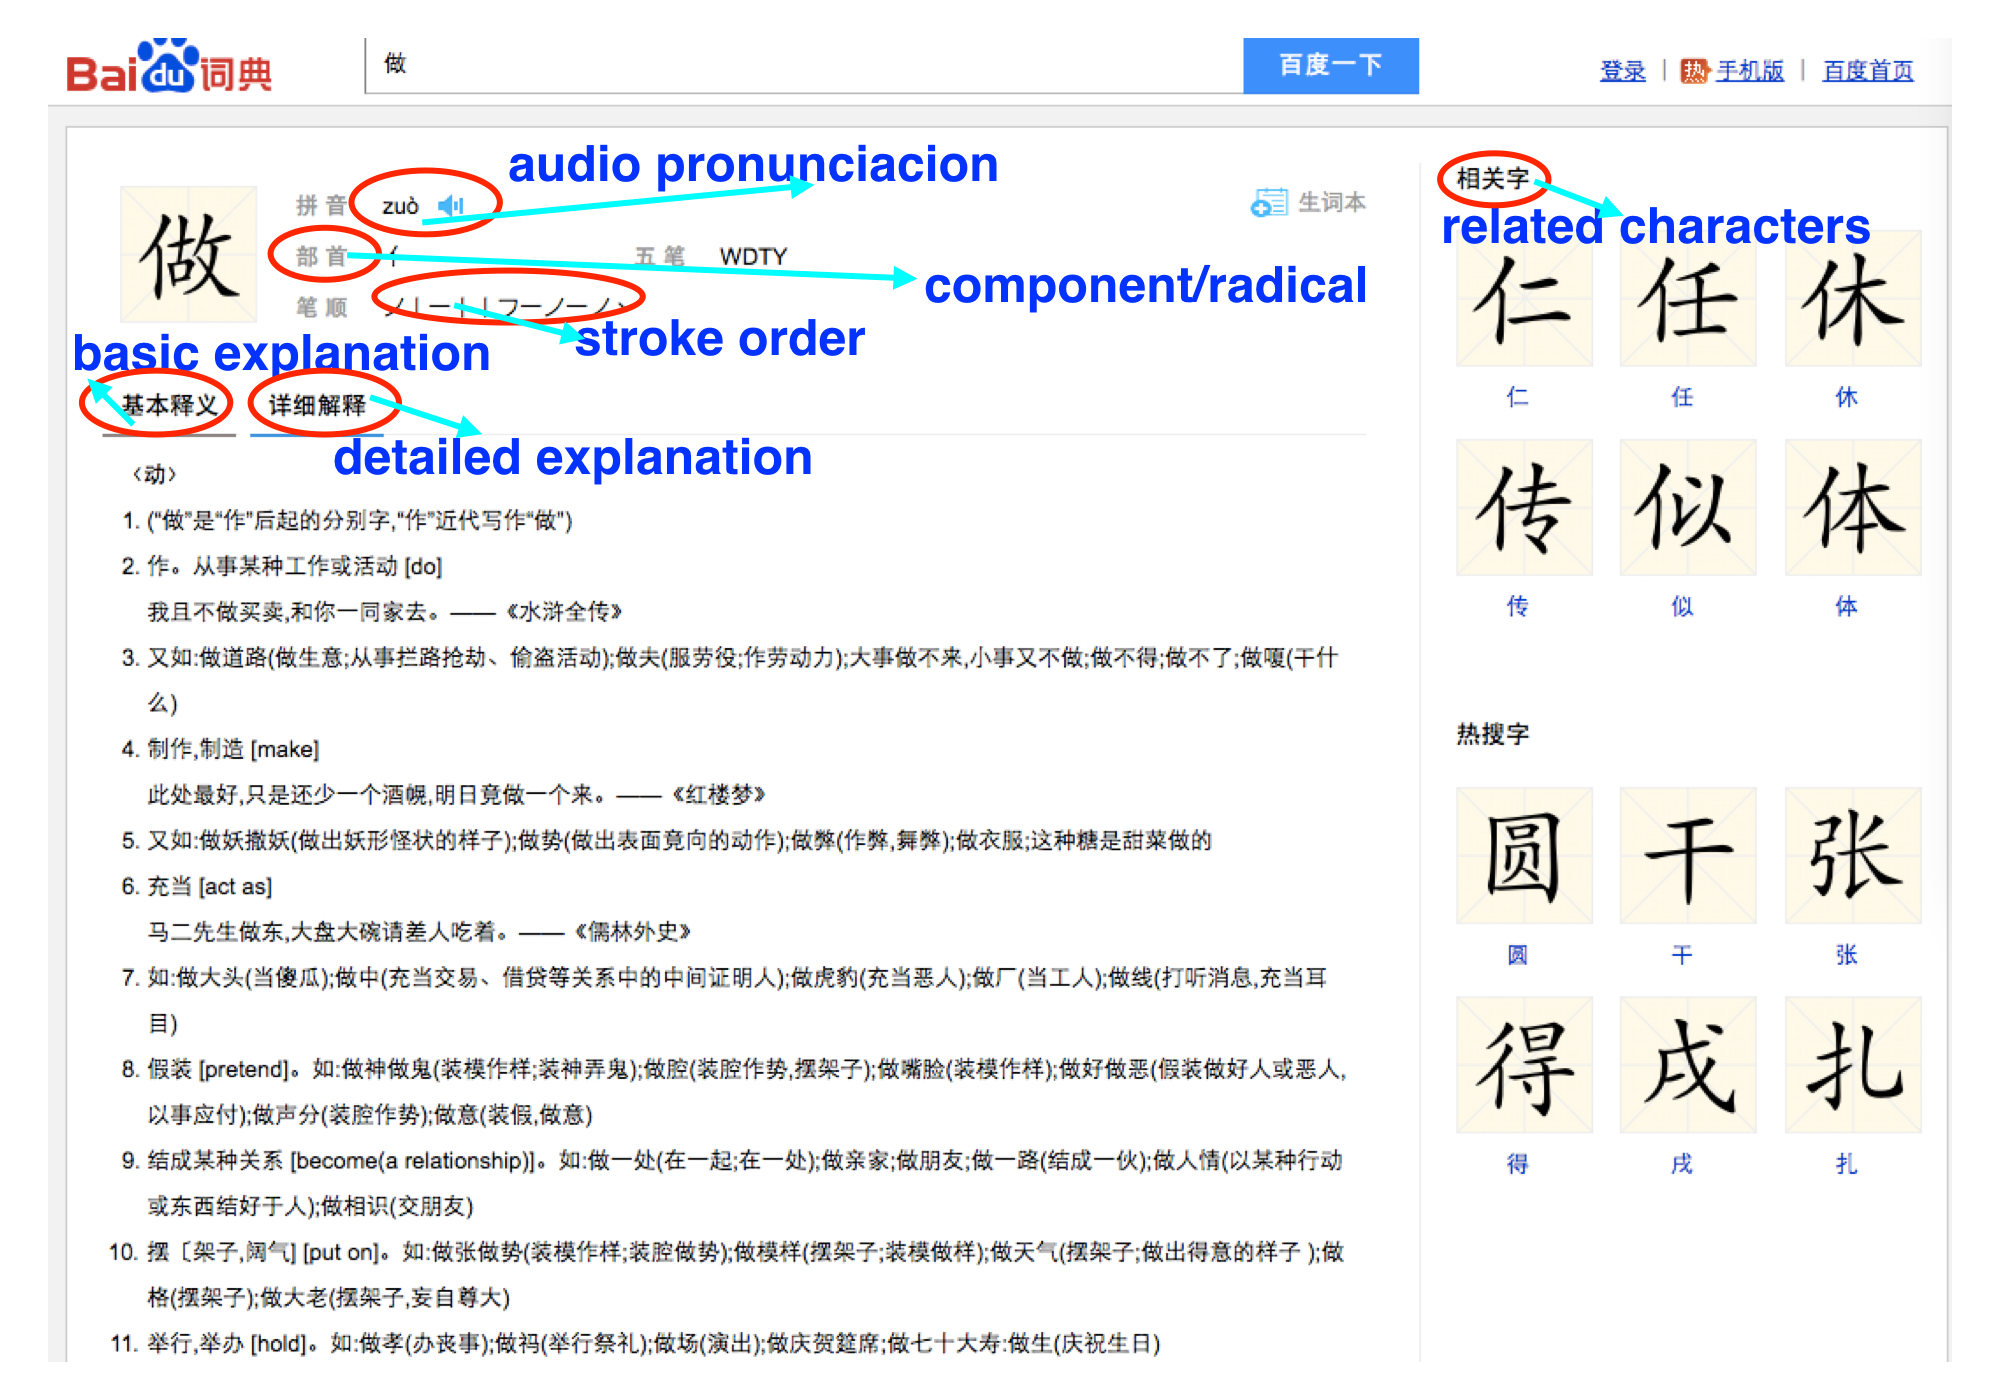 Online Chinese Dictionary, Baidu Dictionary